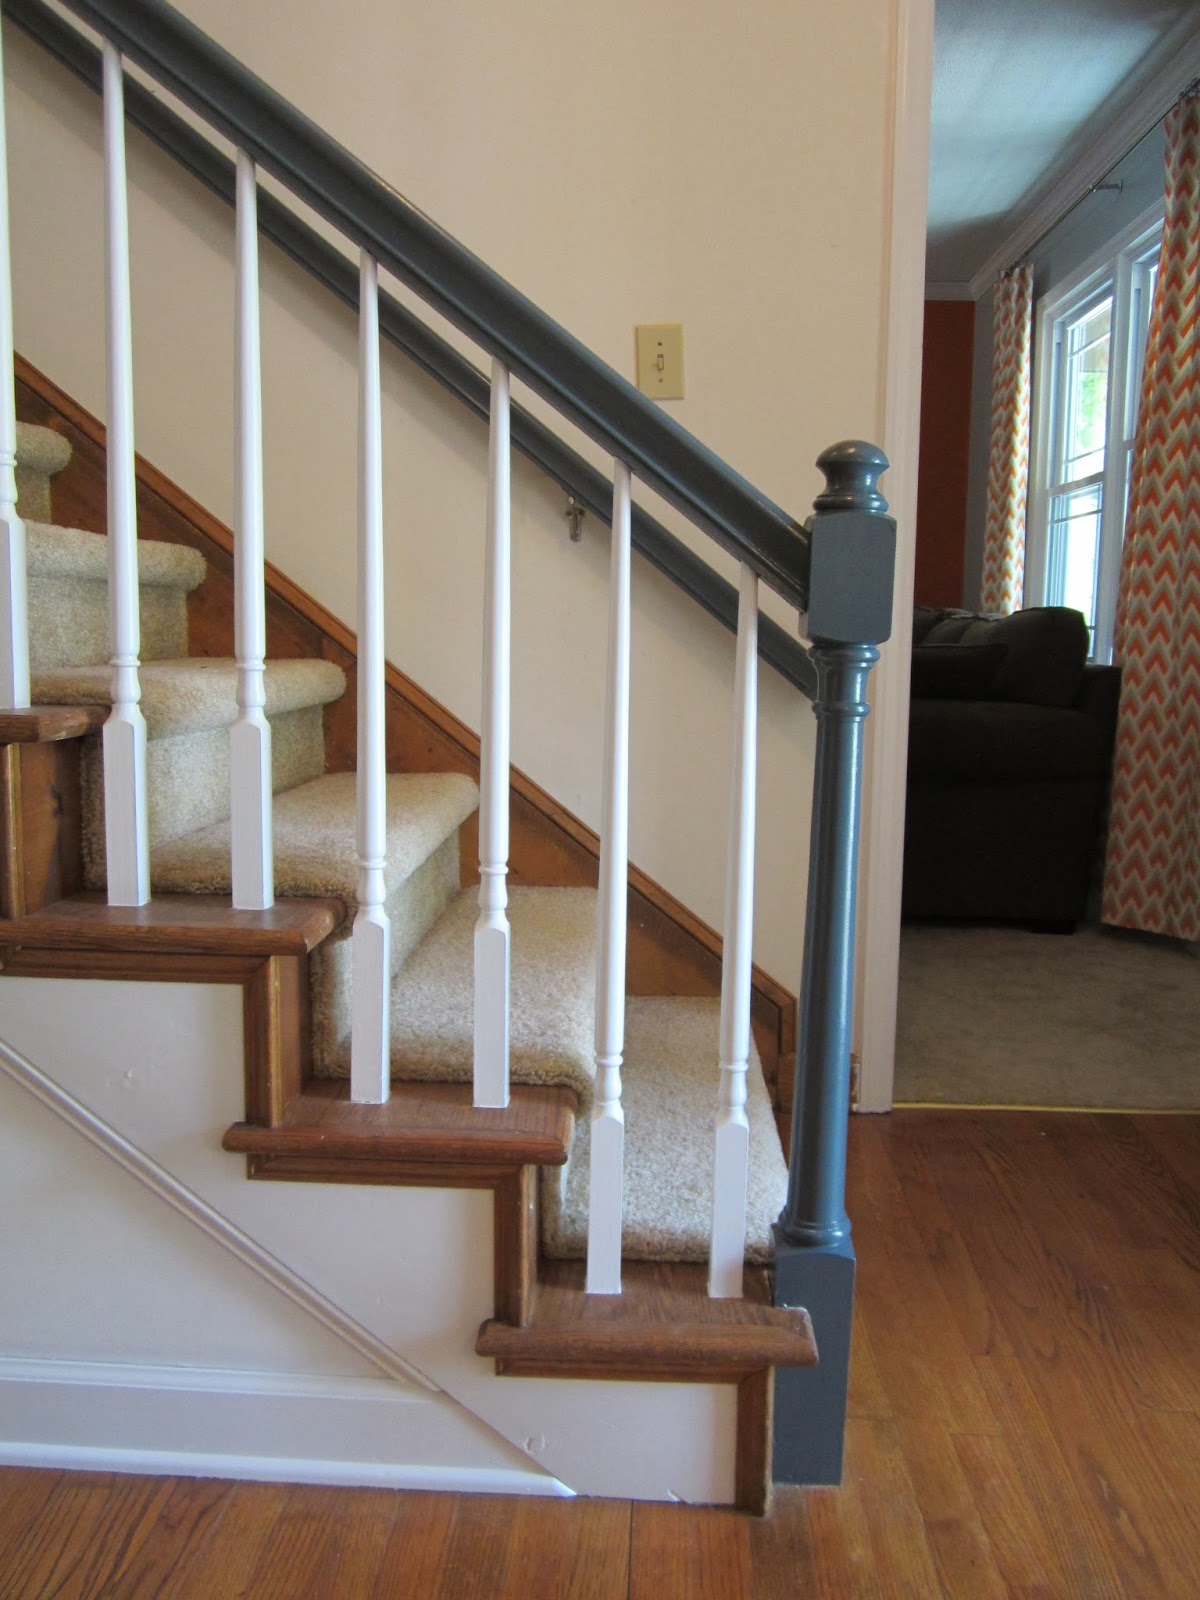 The Amberican Dream Banister Beautification